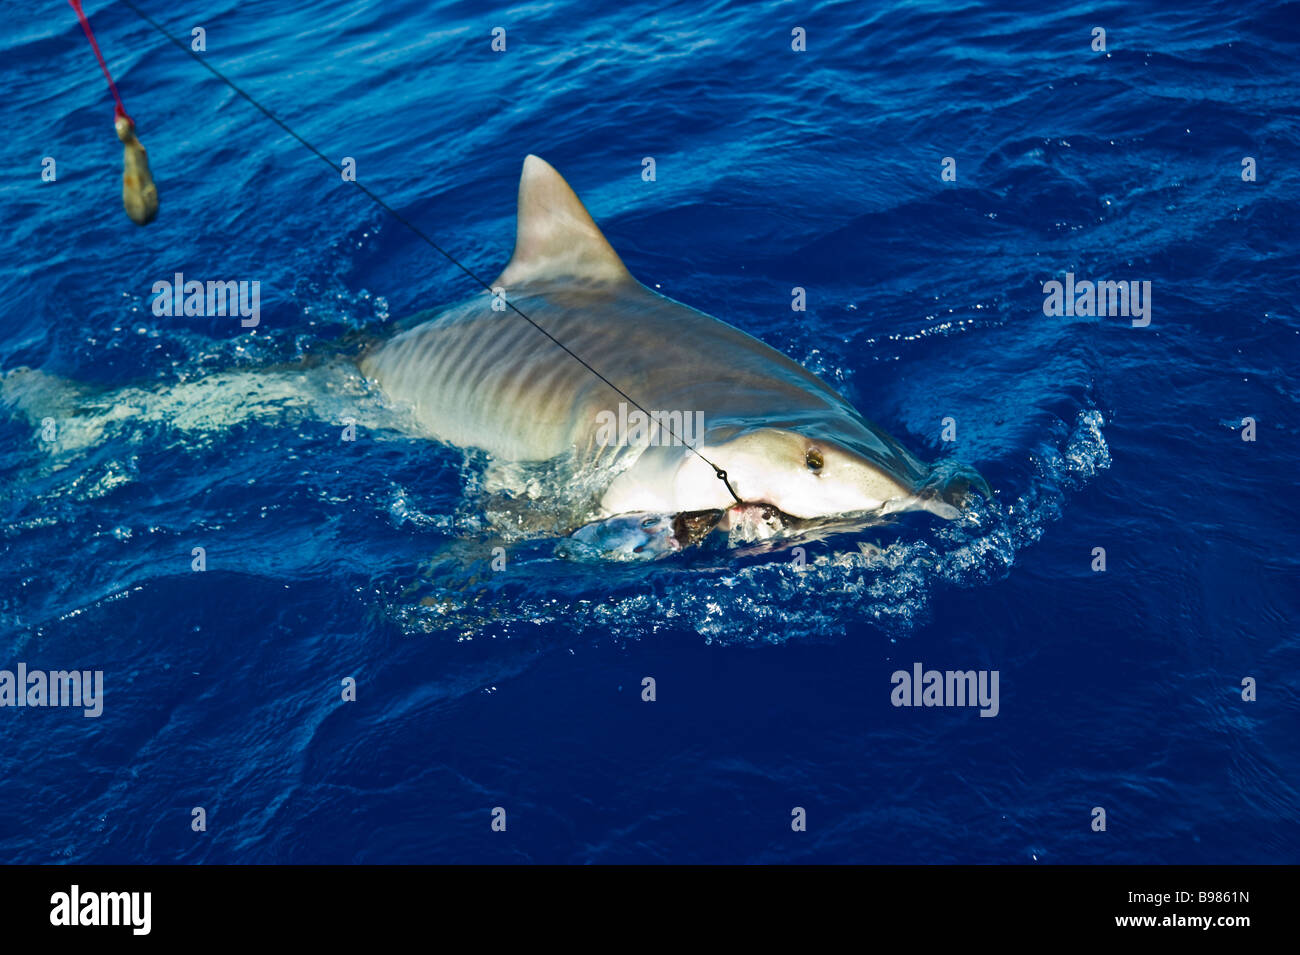 Catch of tiger shark big game fishing La Reunion France | Tigerhai, Fang am Haken, Hochseeangeln, La Reunion Stock Photo